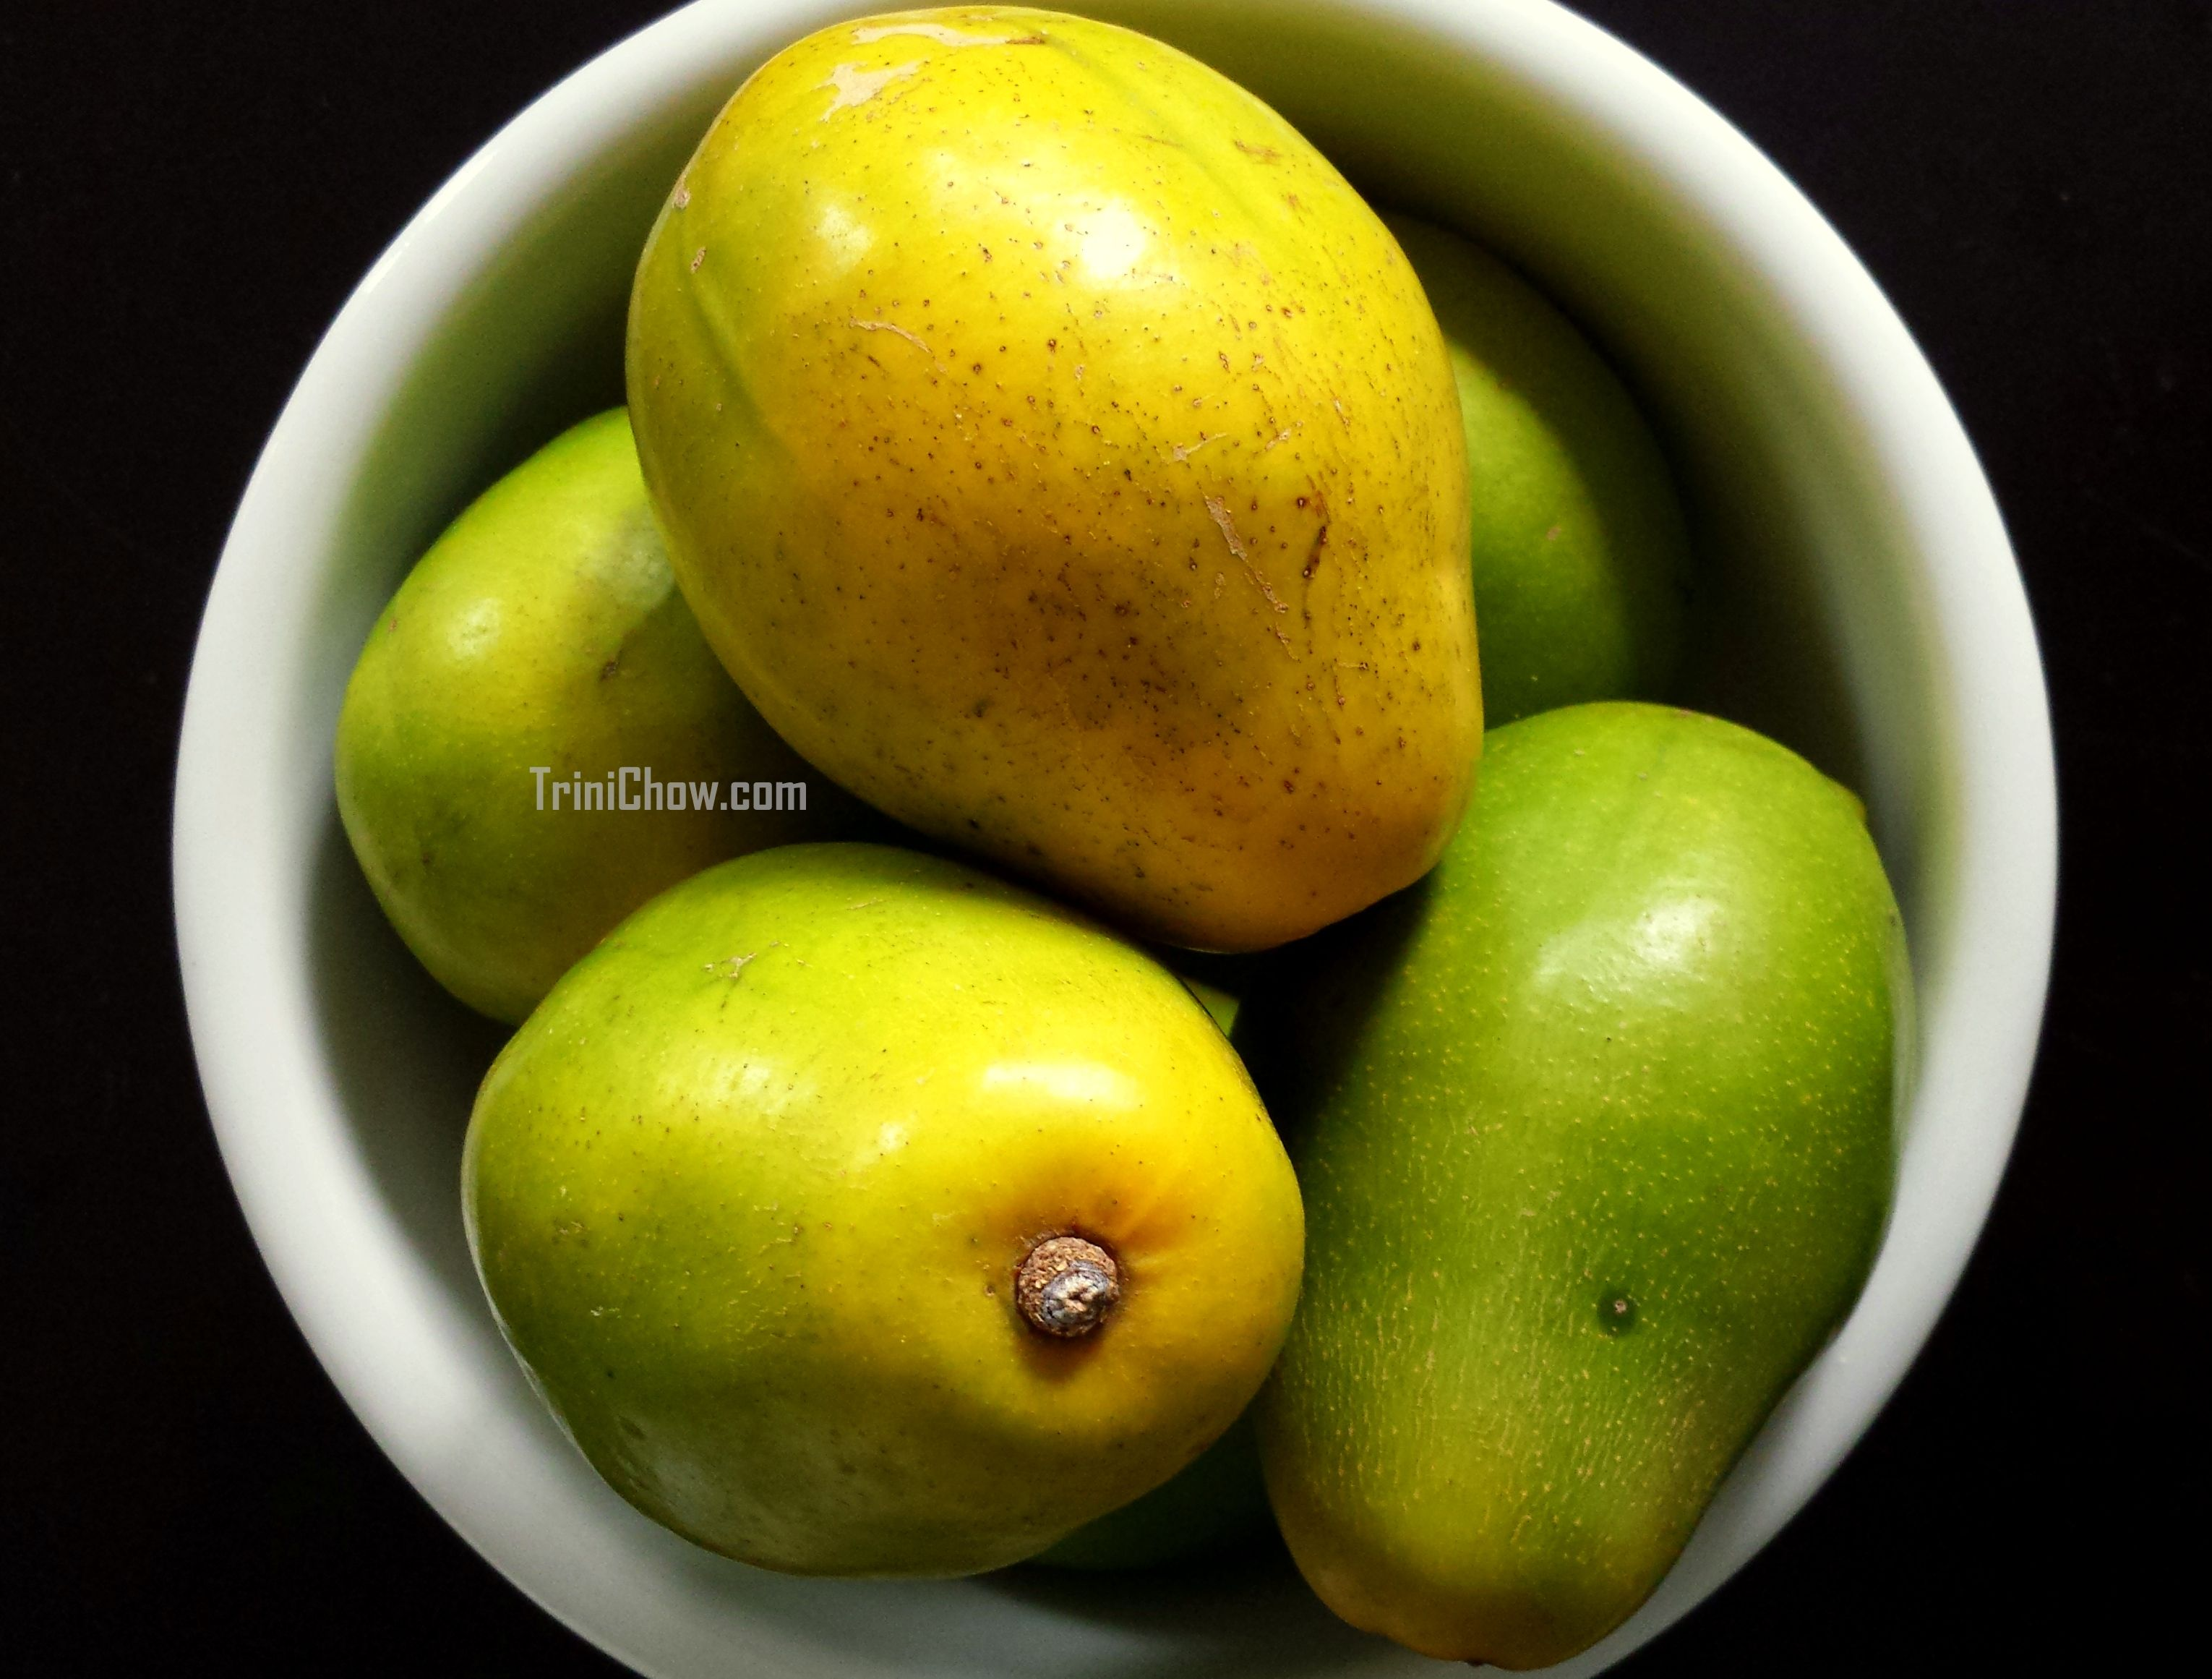 pommecythere golden apple fruits and vegetables of trinidad